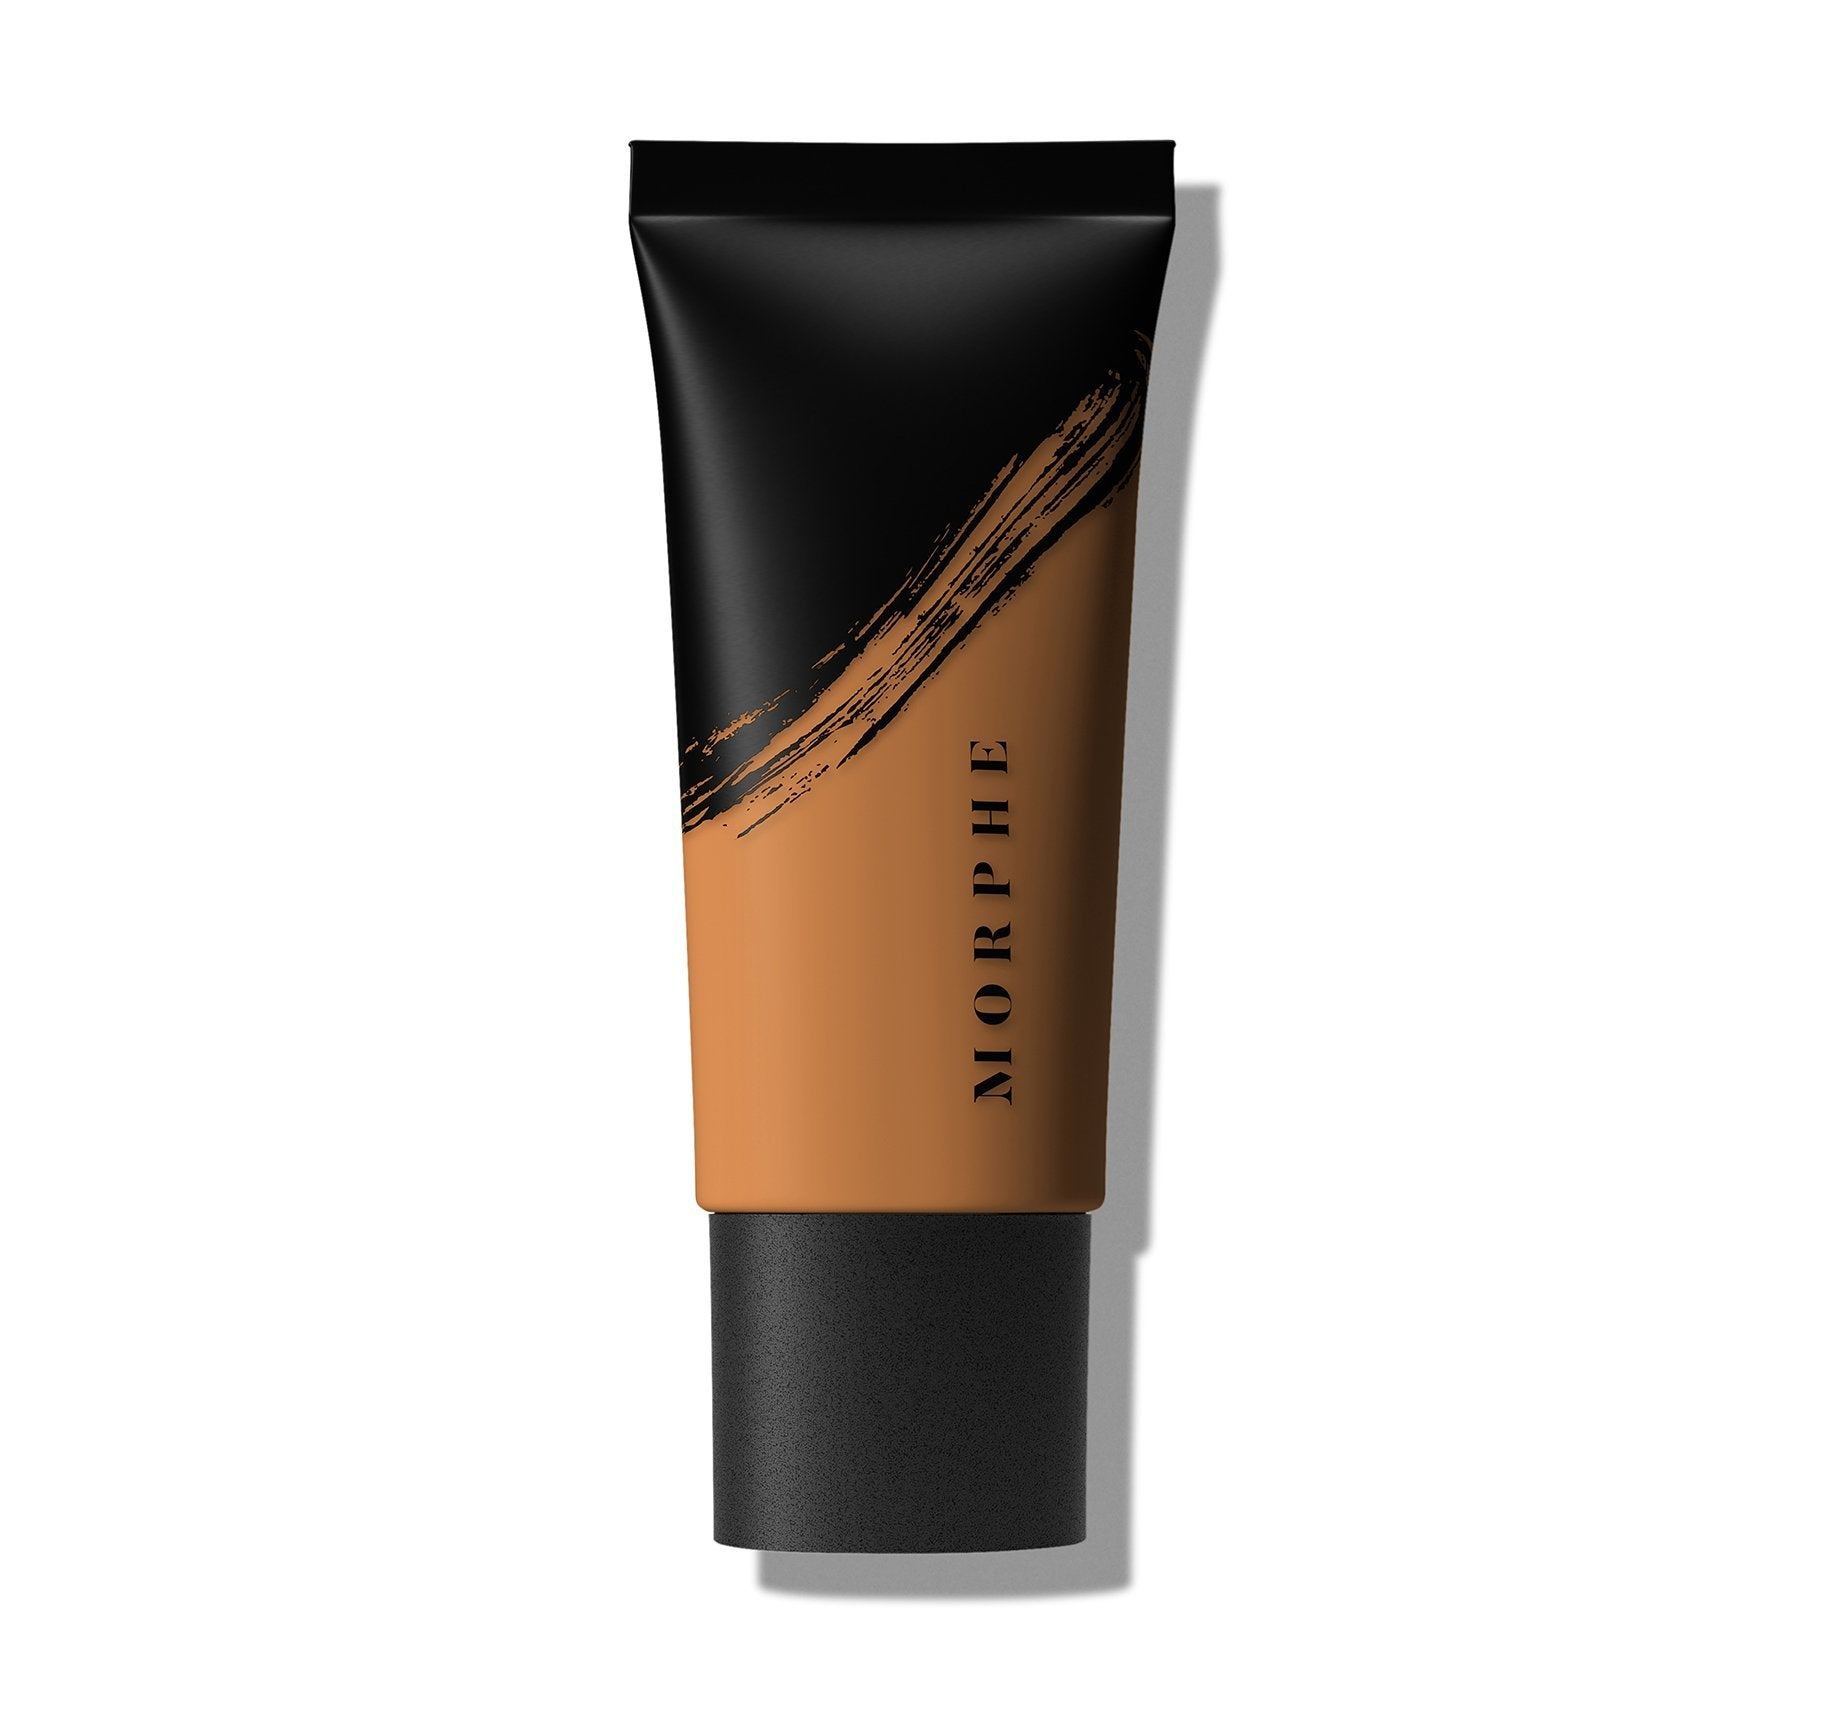 FLUIDITY FULL-COVERAGE FOUNDATION - F3.60, view larger image